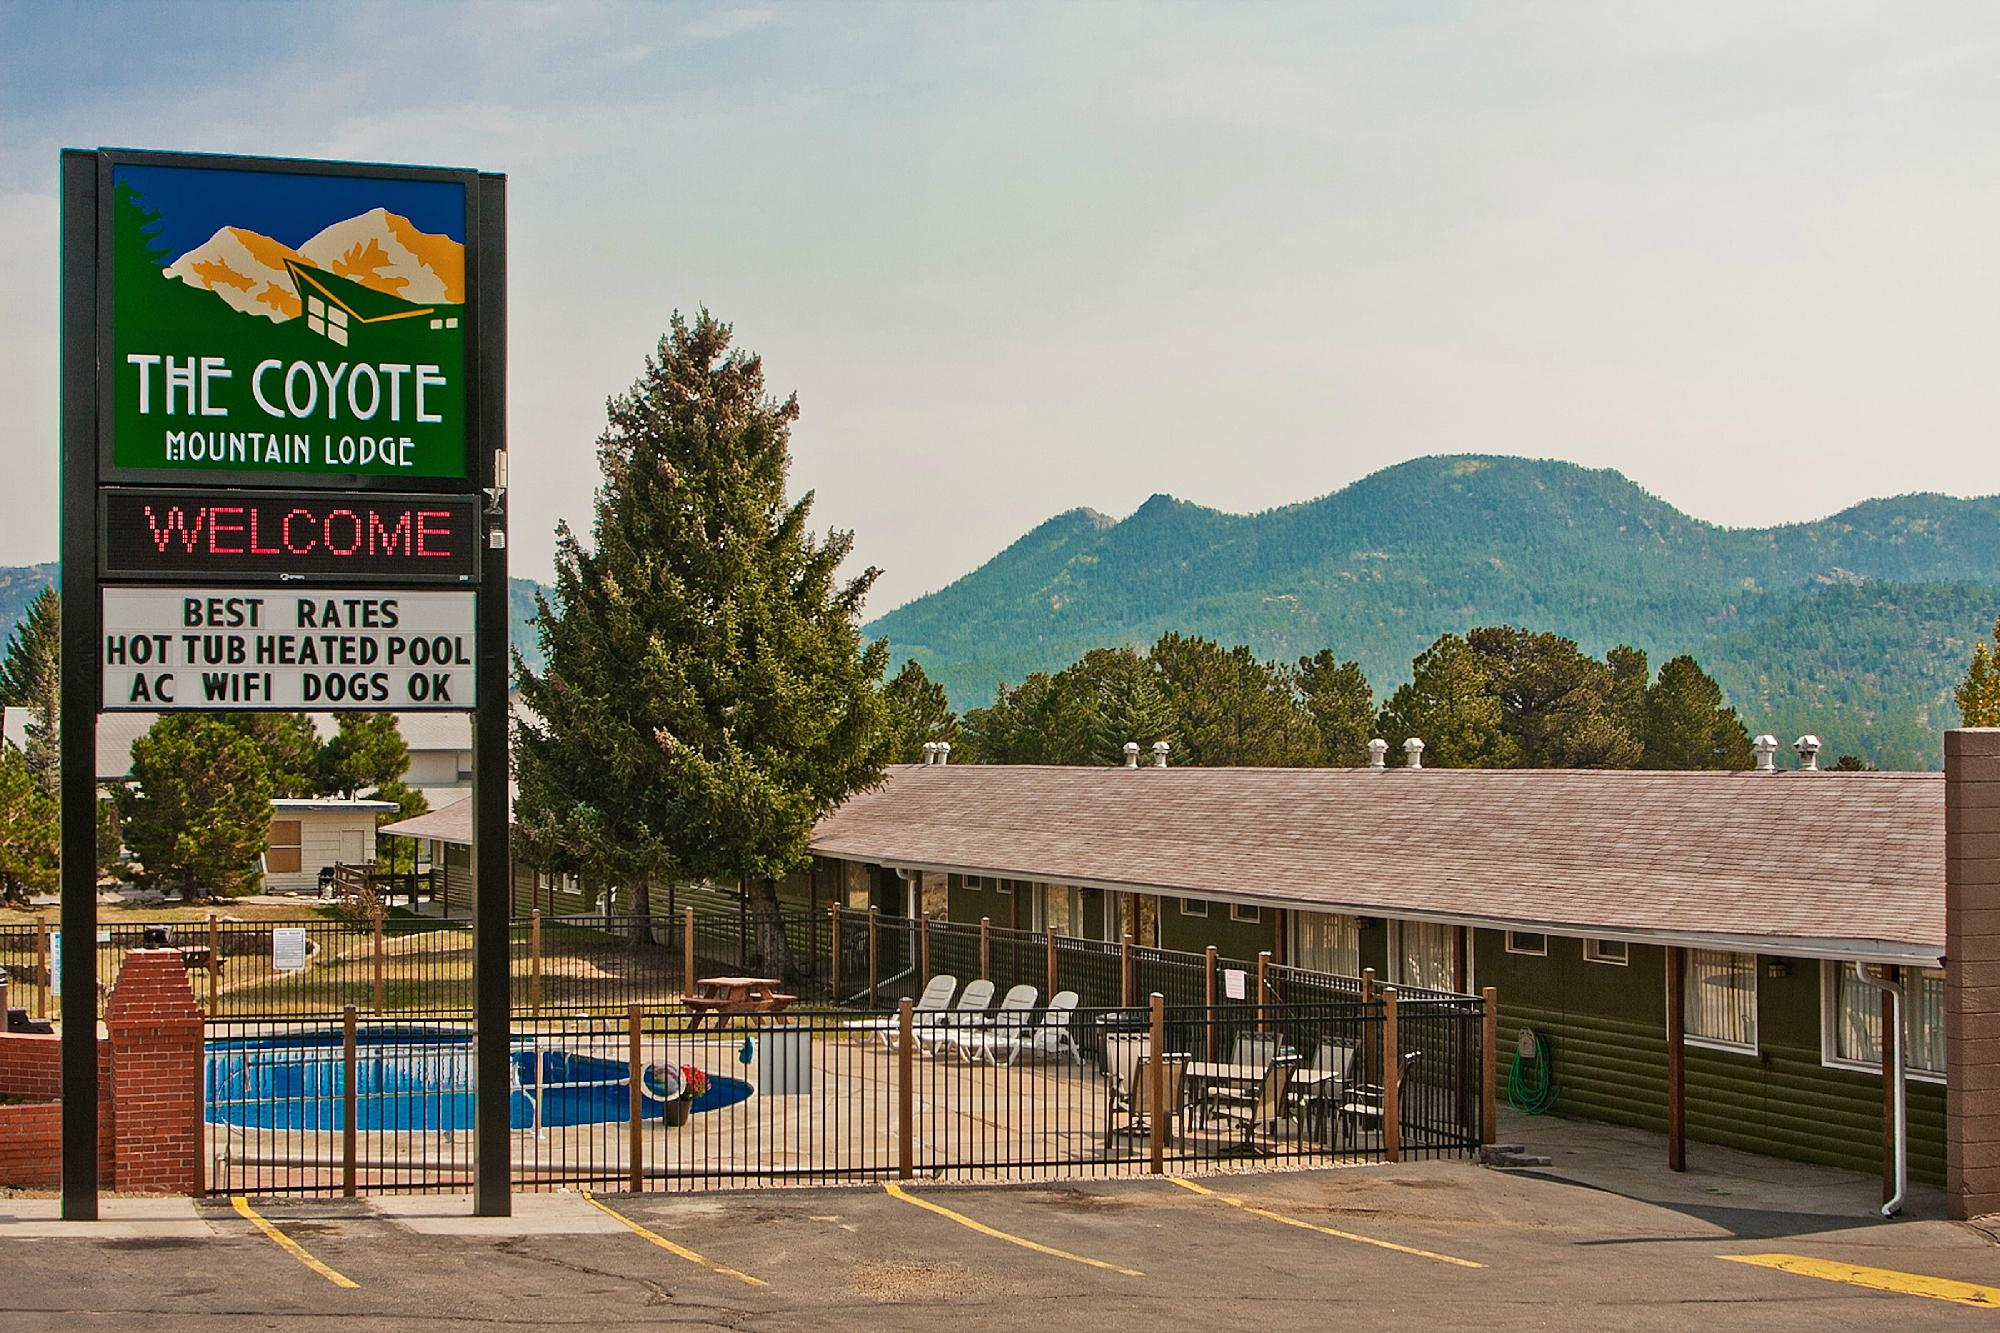 Coyote Mountain Lodge